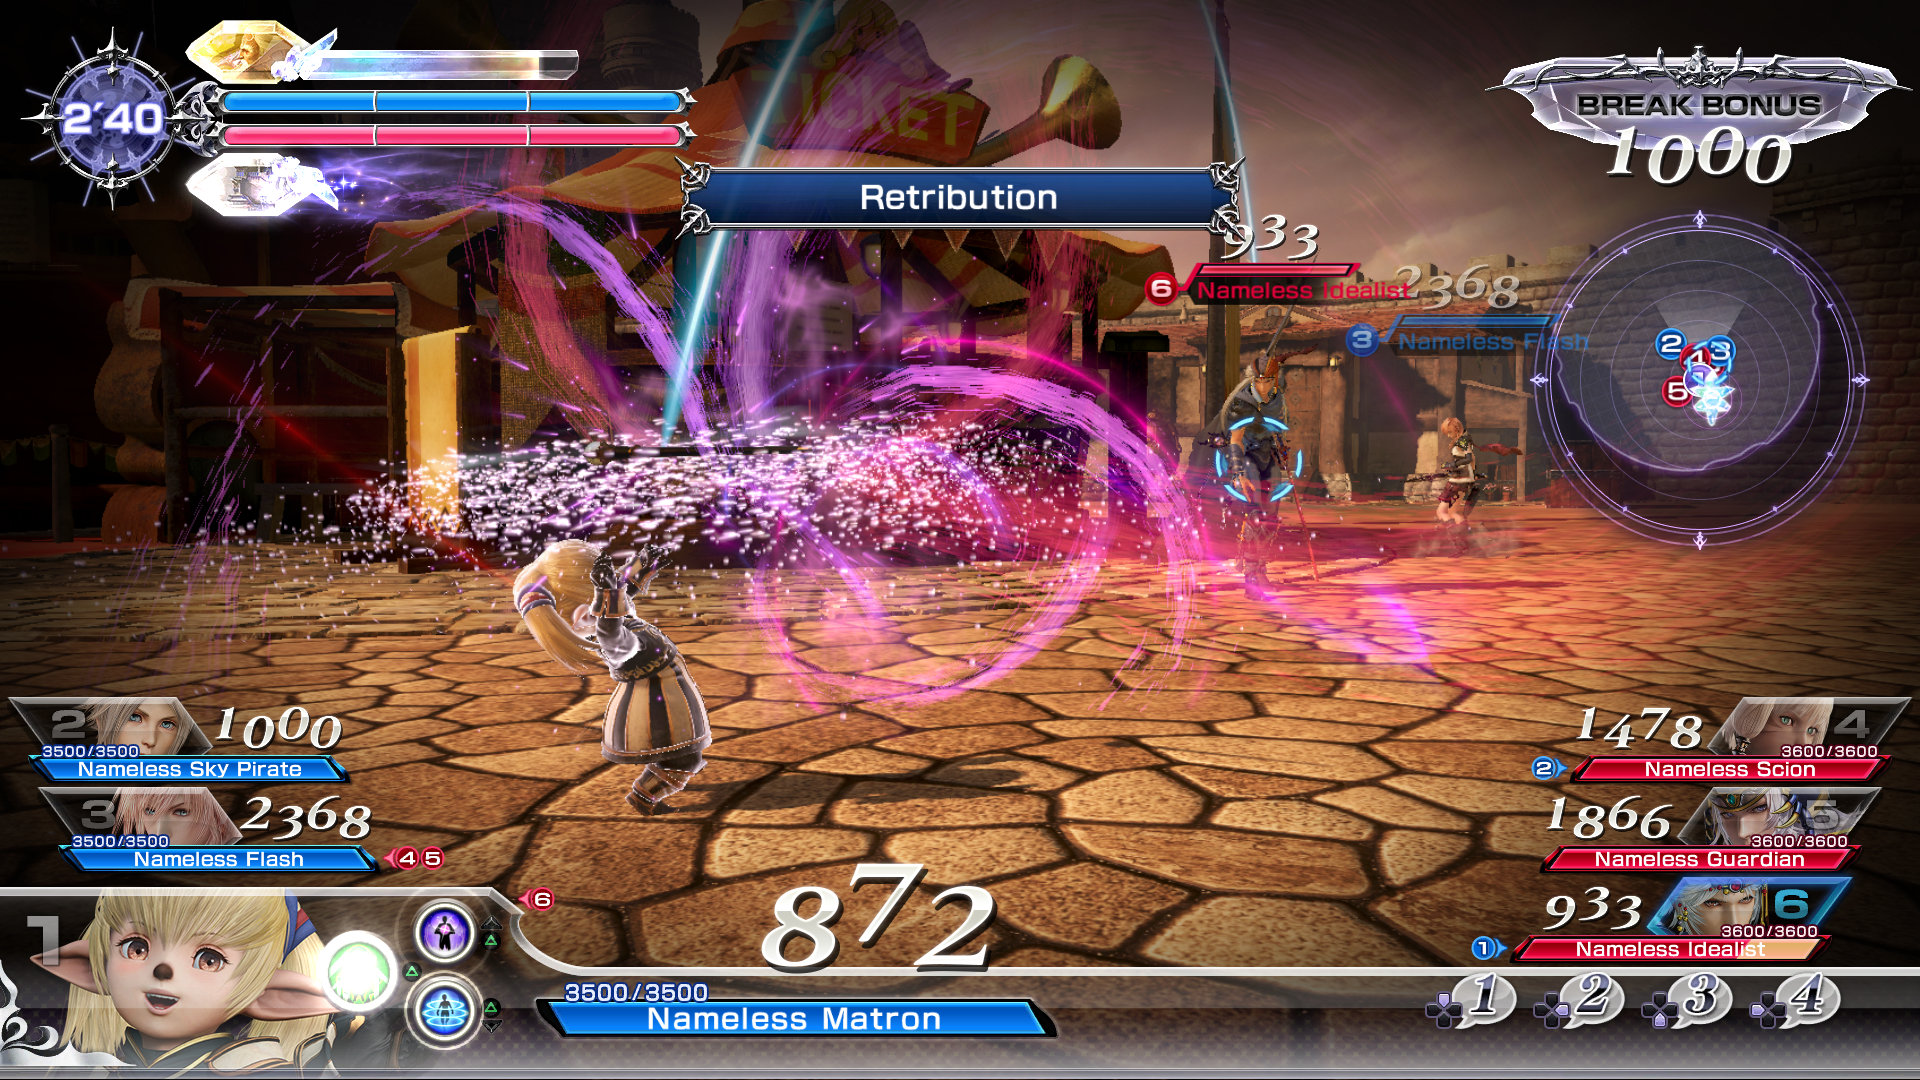 Download dissidia final fantasy opera omnia for pc pc apps cart.